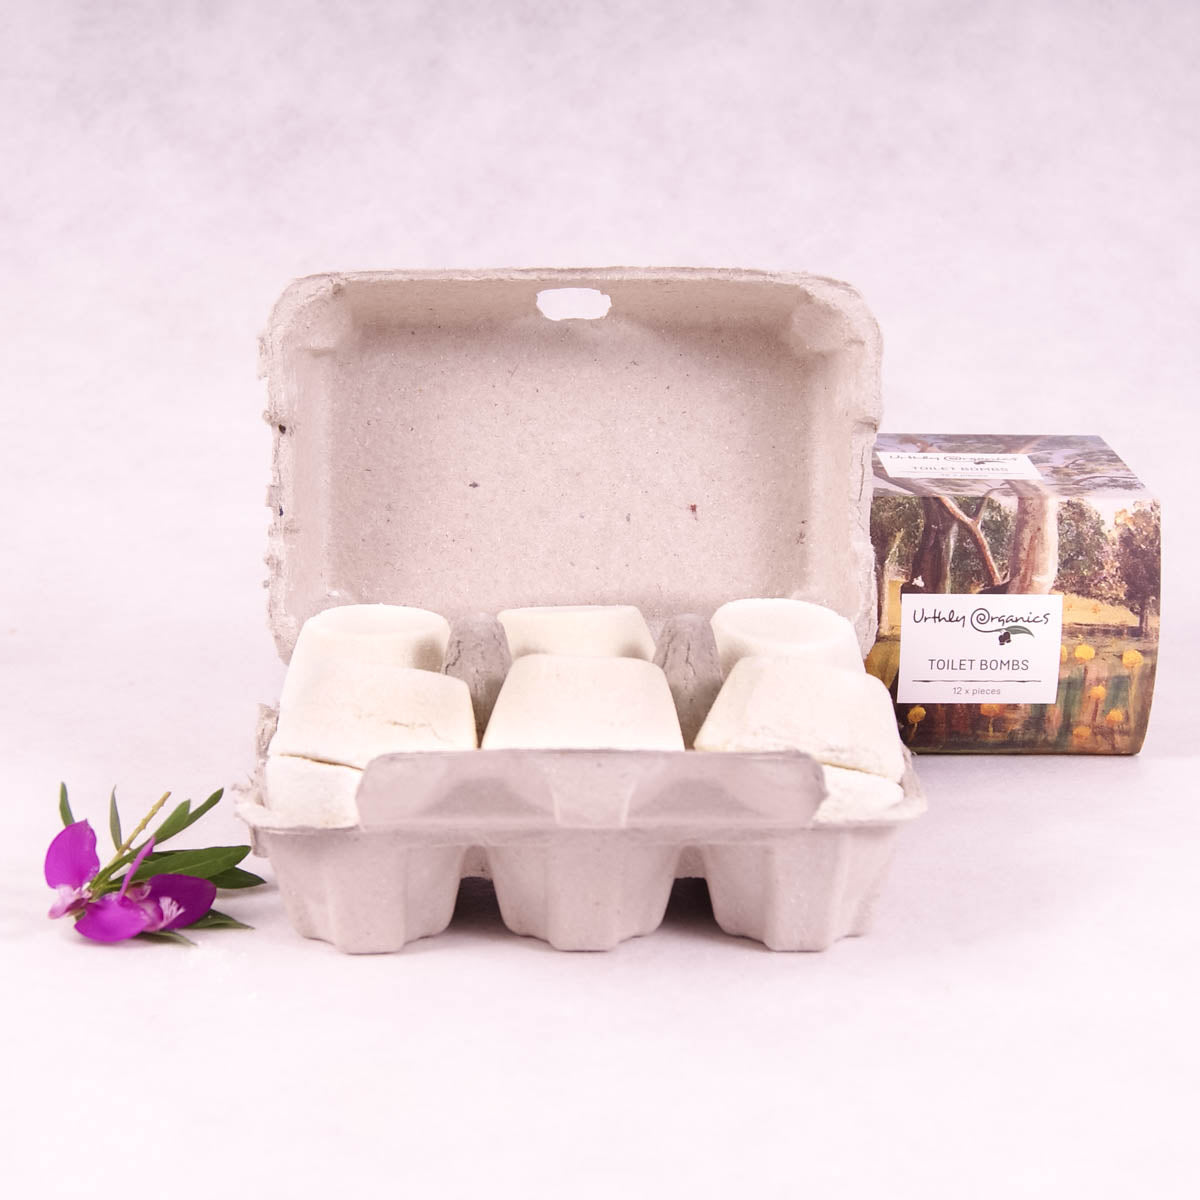 Toilet Bombs Carton of 12 - Urthly Organics - Toilet Cleaner - Throw Some Seeds - Australian gardening gifts and eco products online!